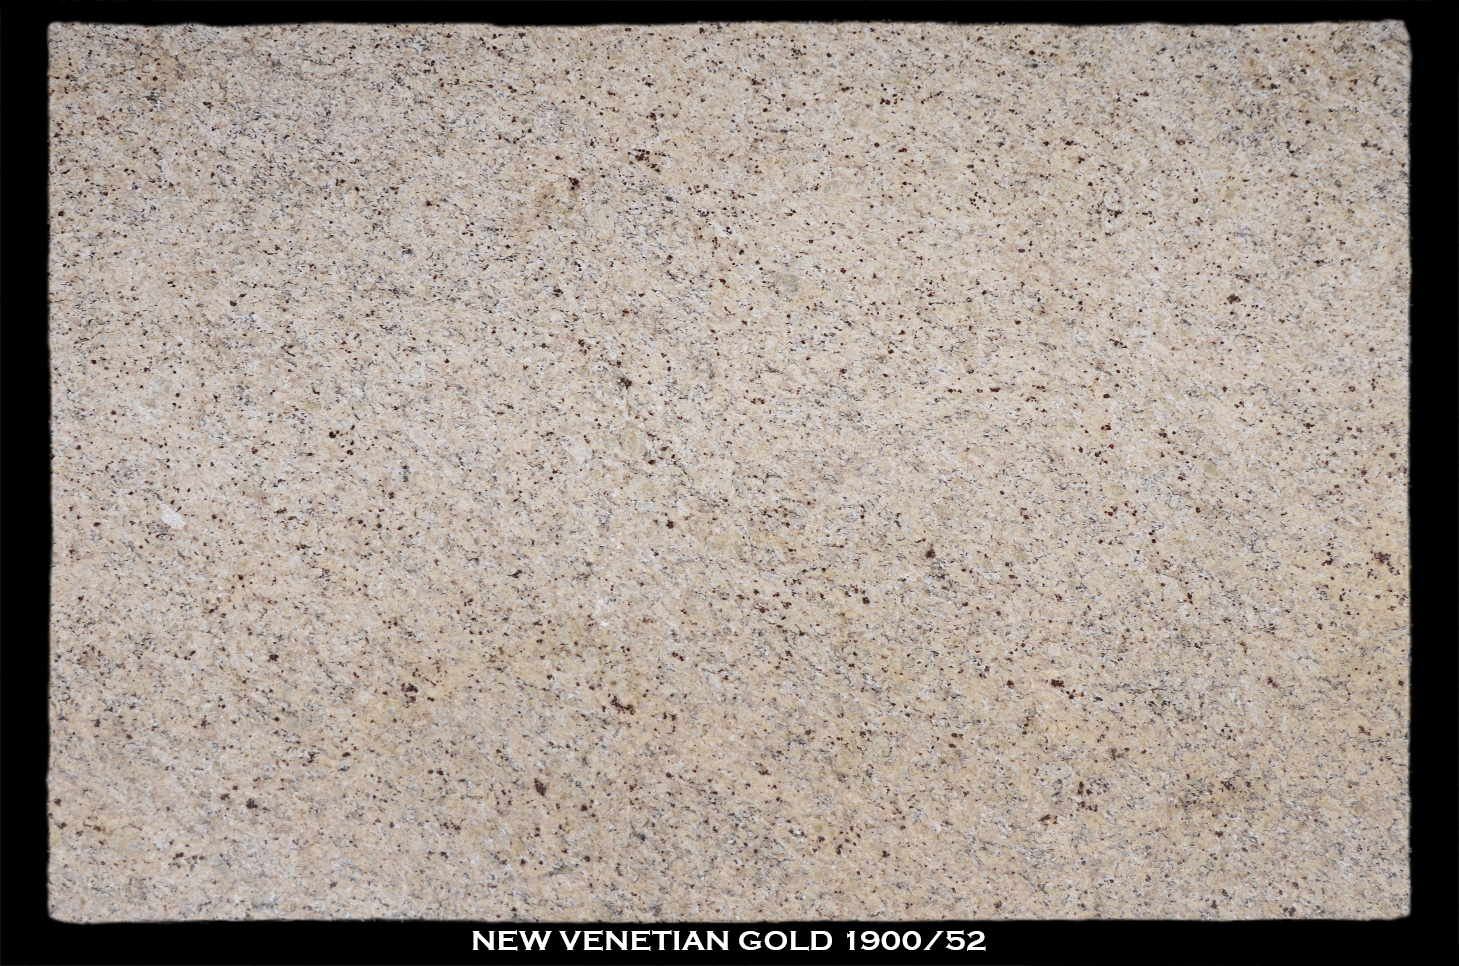 NEW-VENETIAN-GOLD-1900-52-SLAB